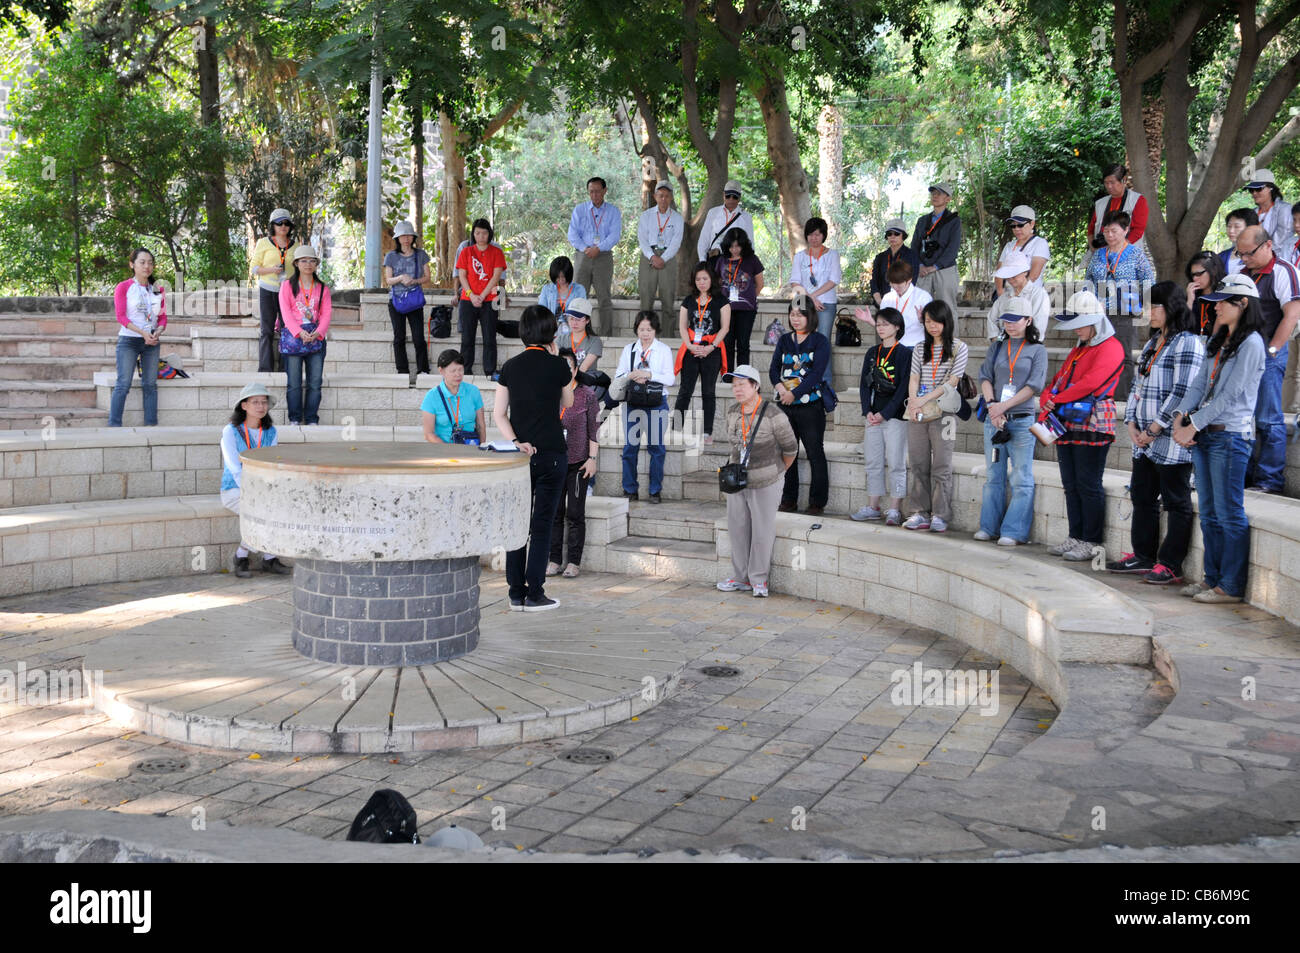 Pilgrims praying near Church of the Primacy of Peter in Tabgha,Galilee, Israel,Asia, Middle East - Stock Image